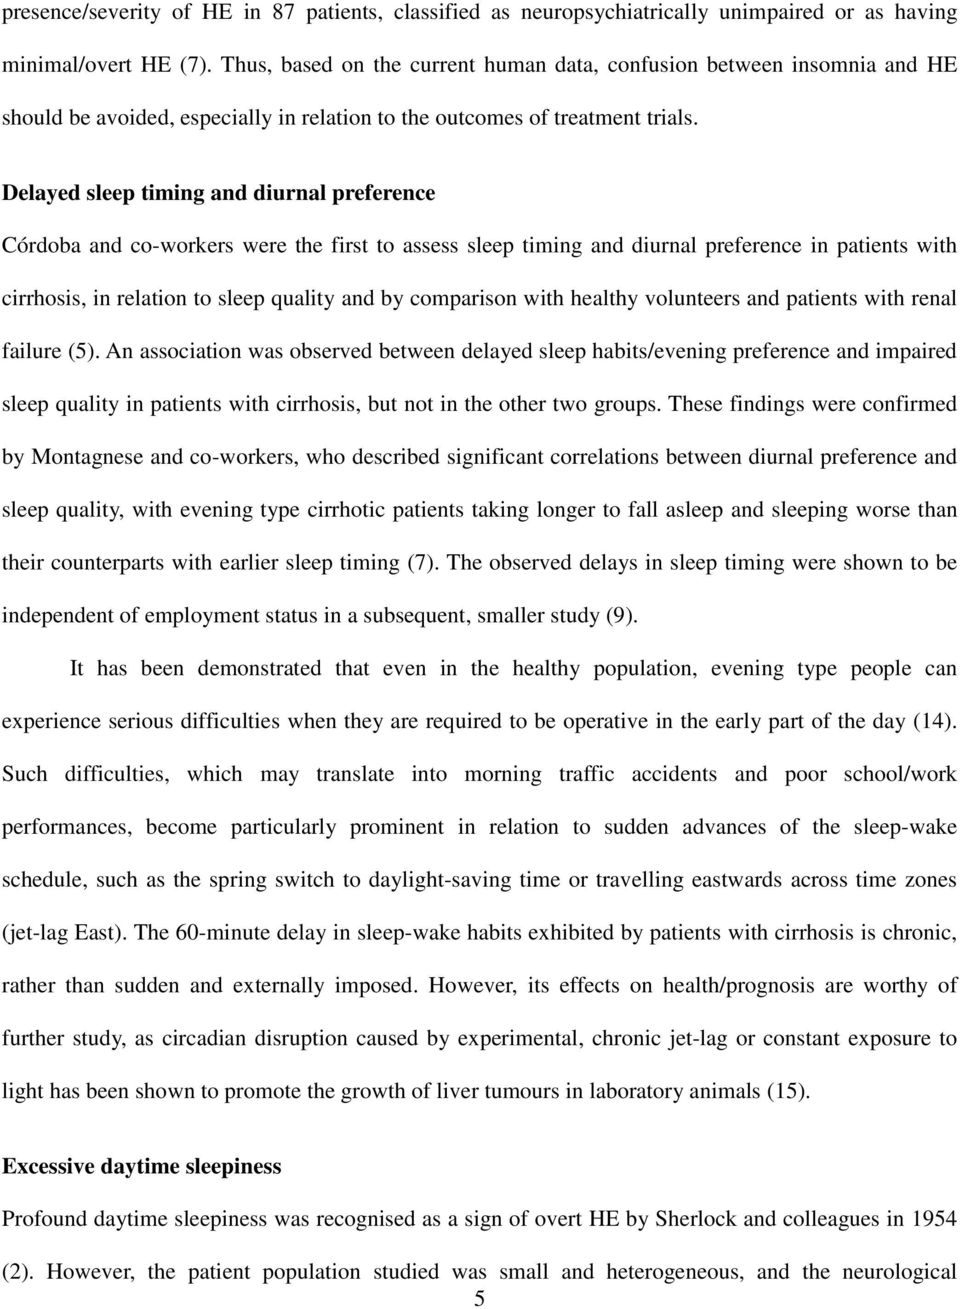 Delayed sleep timing and diurnal preference Córdoba and co-workers were the first to assess sleep timing and diurnal preference in patients with cirrhosis, in relation to sleep quality and by